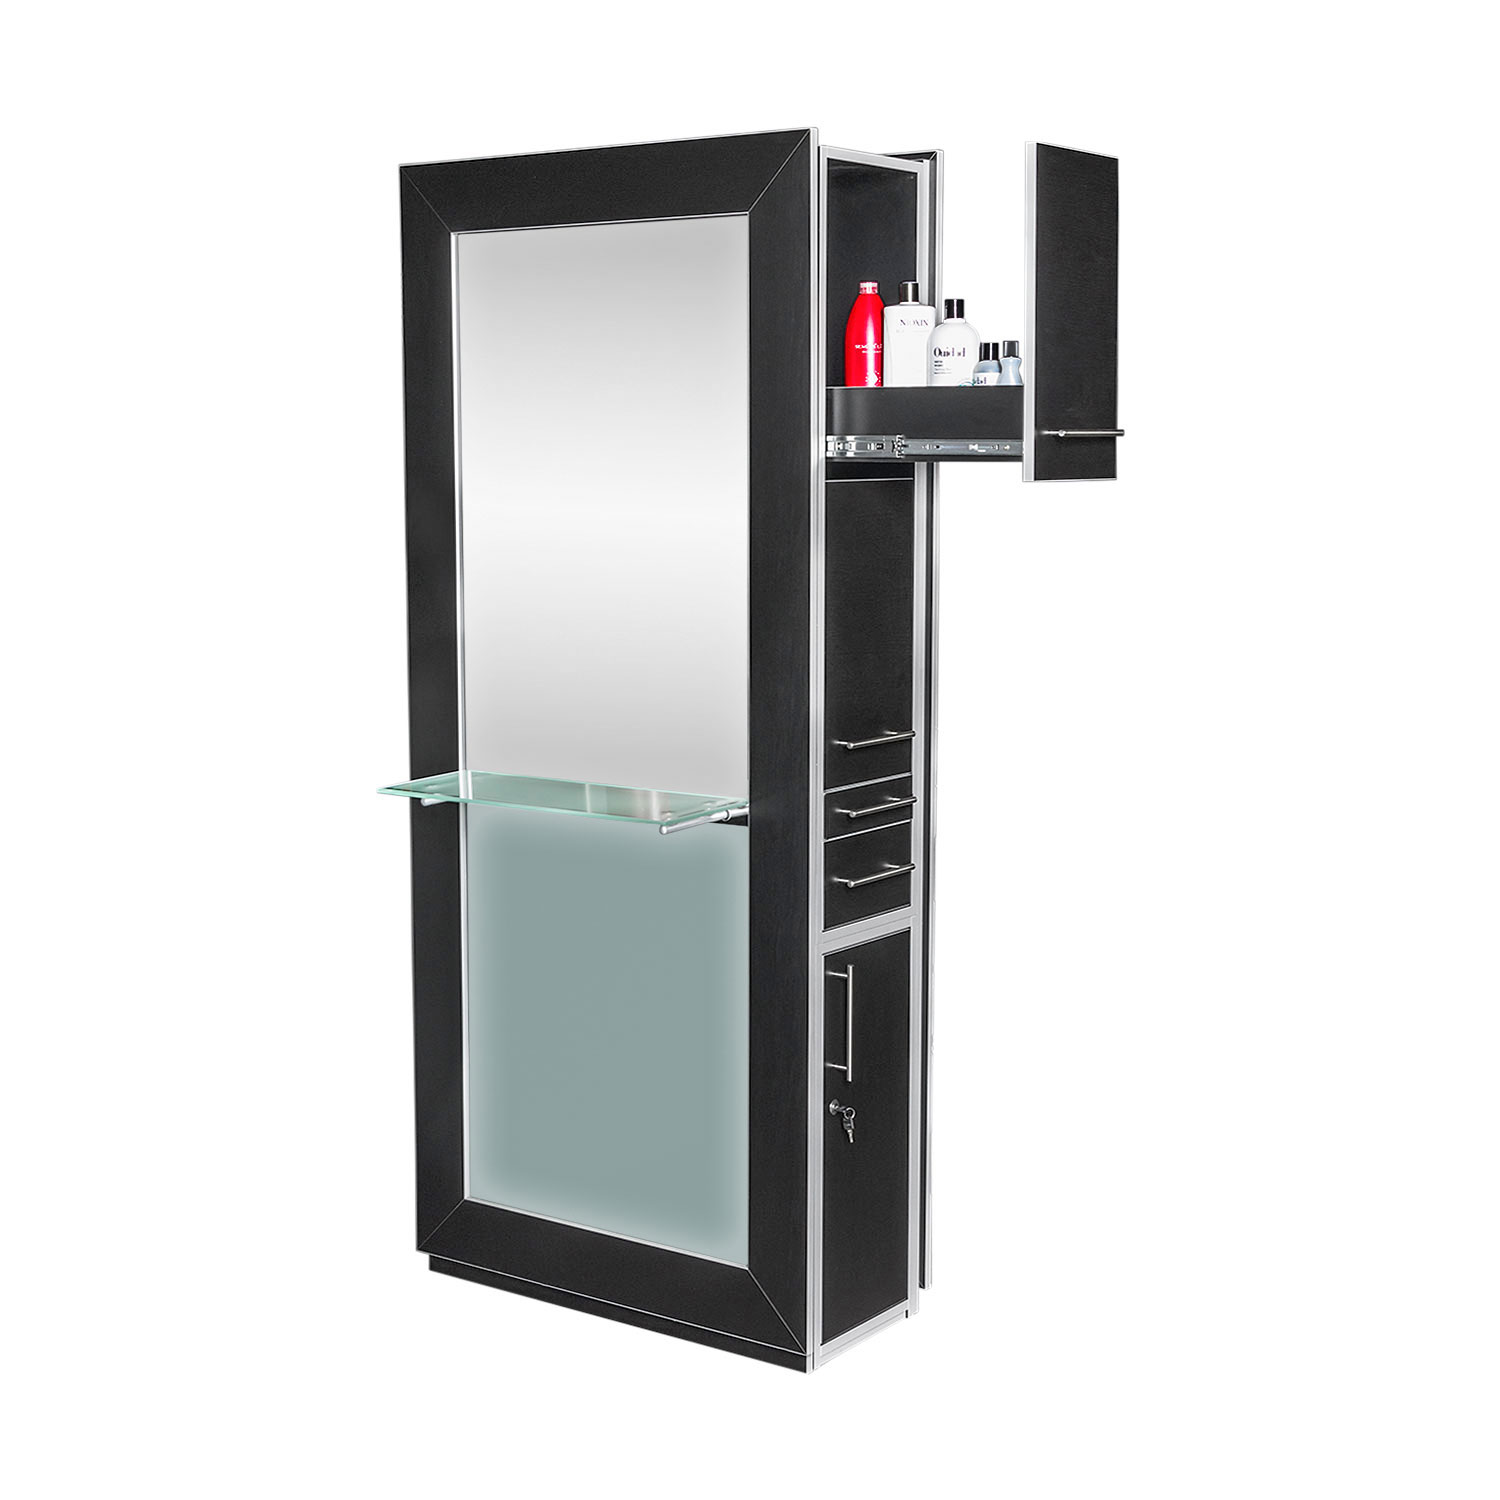 Fusion Mirrored Styling Station Black alternative product image 10